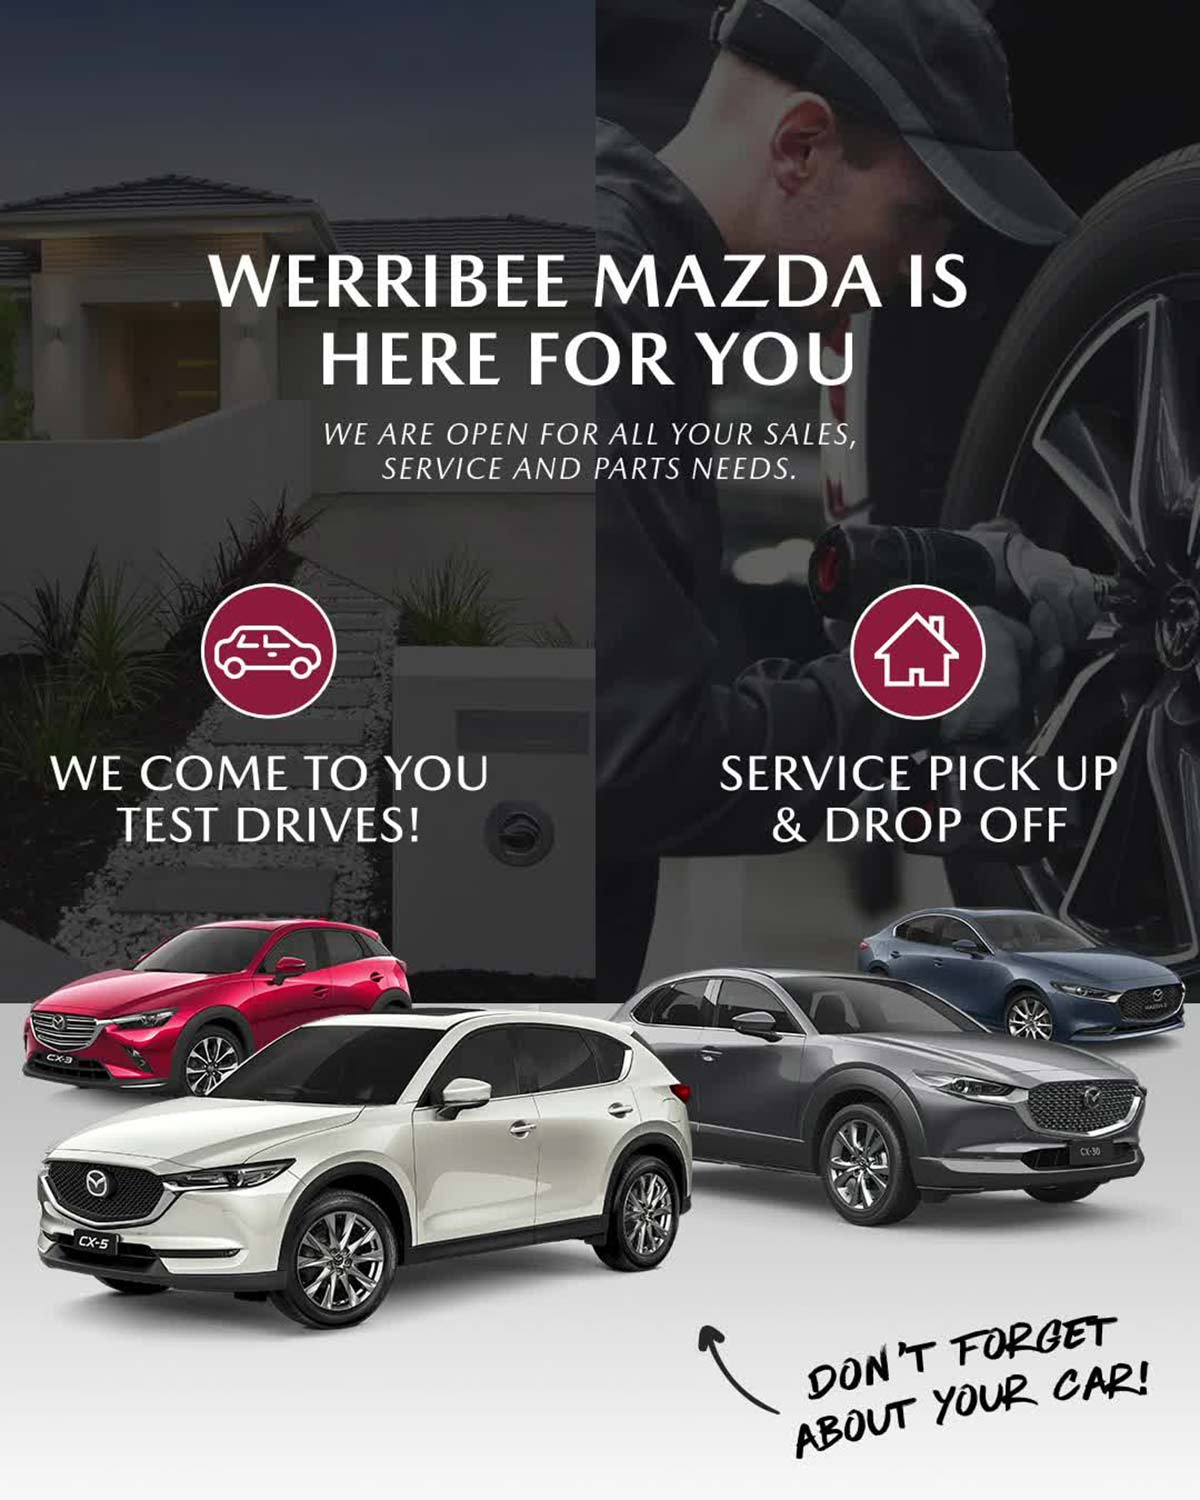 Werribee Mazda is Here For You